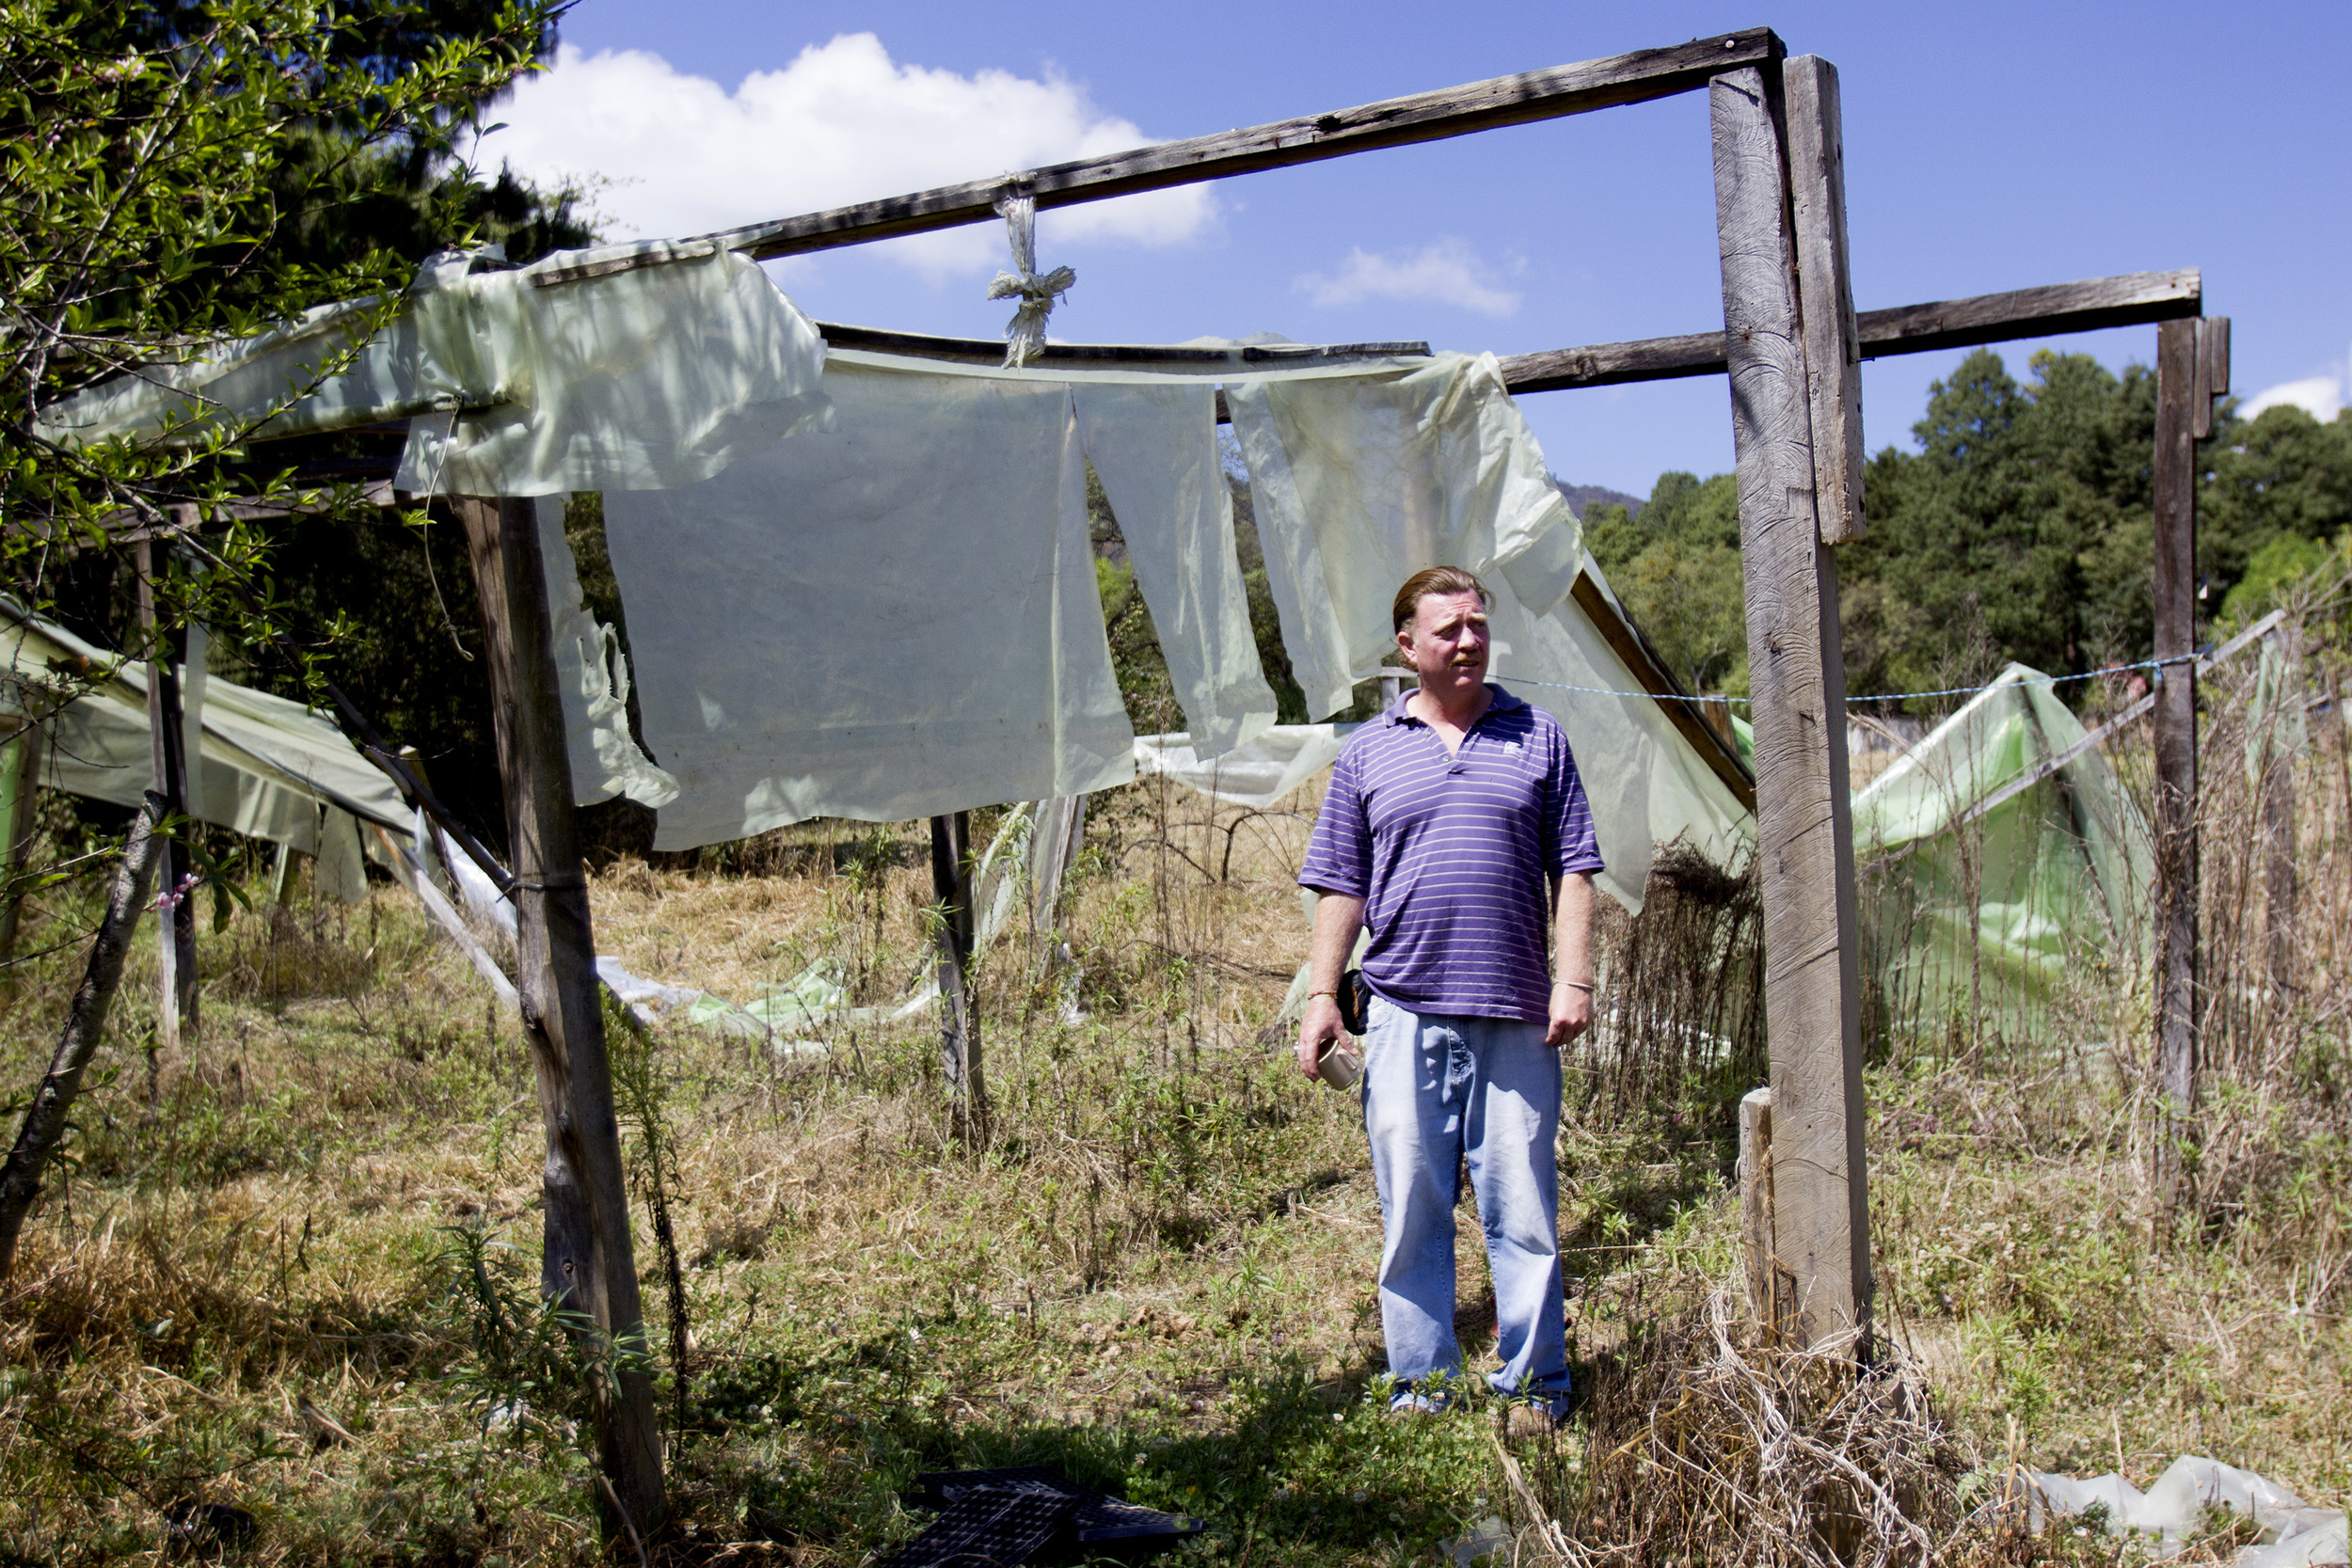 Virgil Edwards inspects what remains of a greenhouse that was built by his mother on the land. His parents bought the 25-acre Rancho El Ar 50 years ago and built it up out of the jungle.